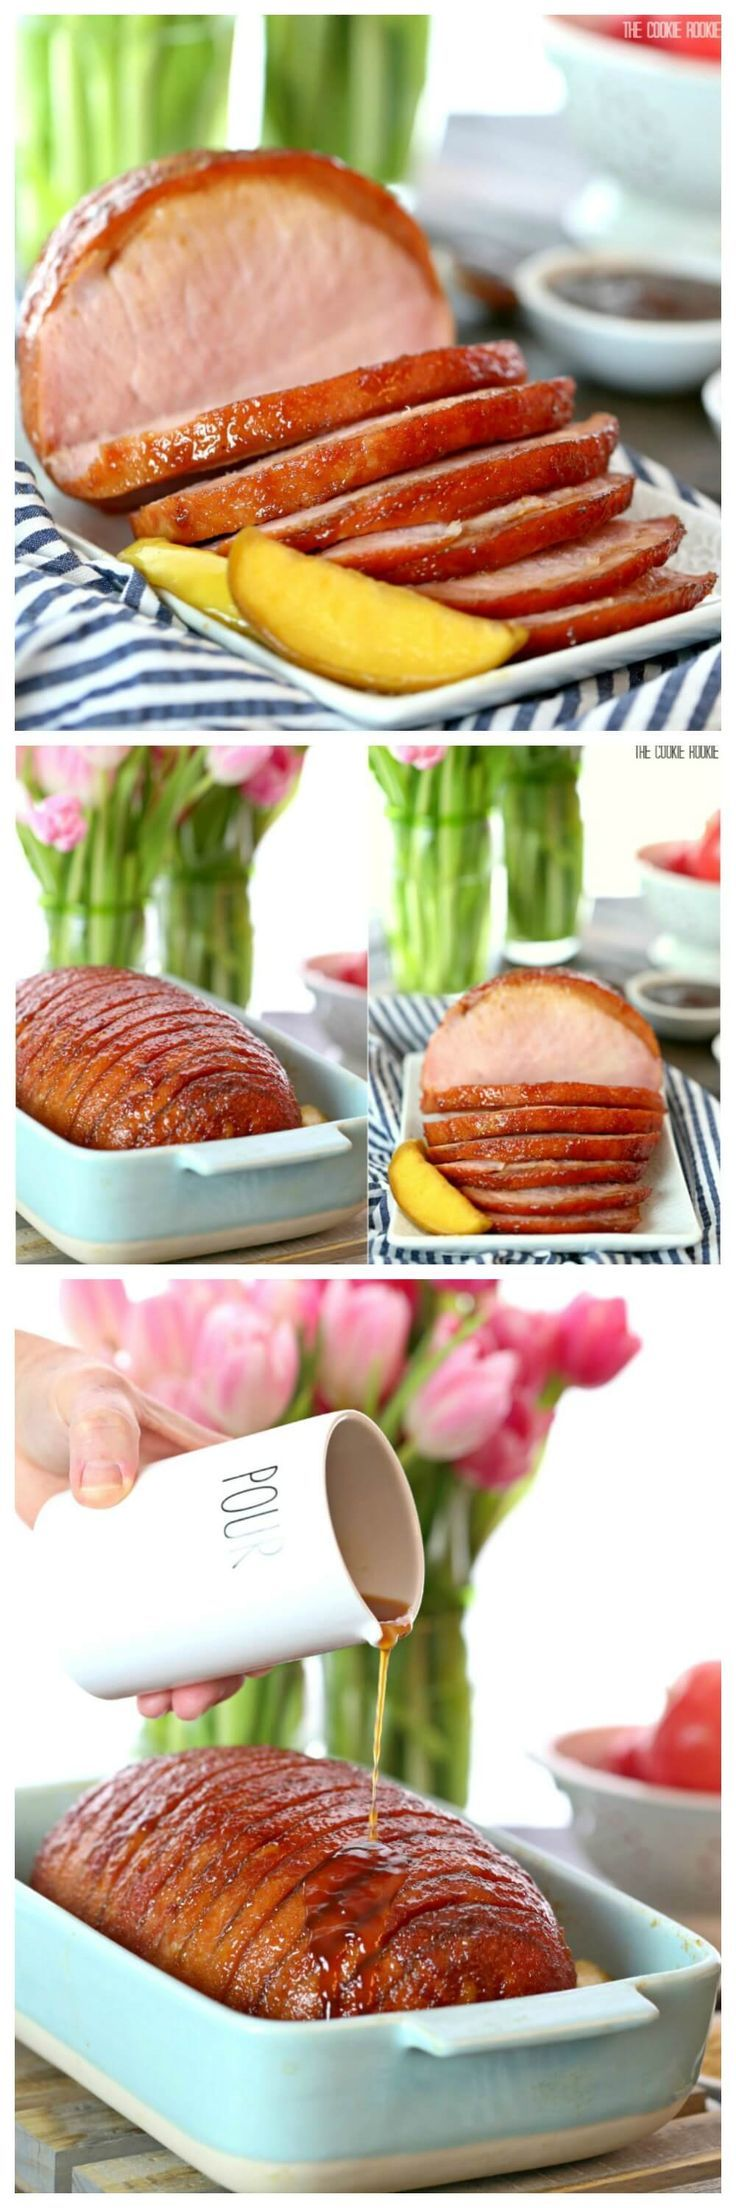 Apple Ginger Glazed Ham, the perfect go-to glaze recipe for any holiday! We make this for Easter, THE BEST GLAZED HAM you'll ever eat!